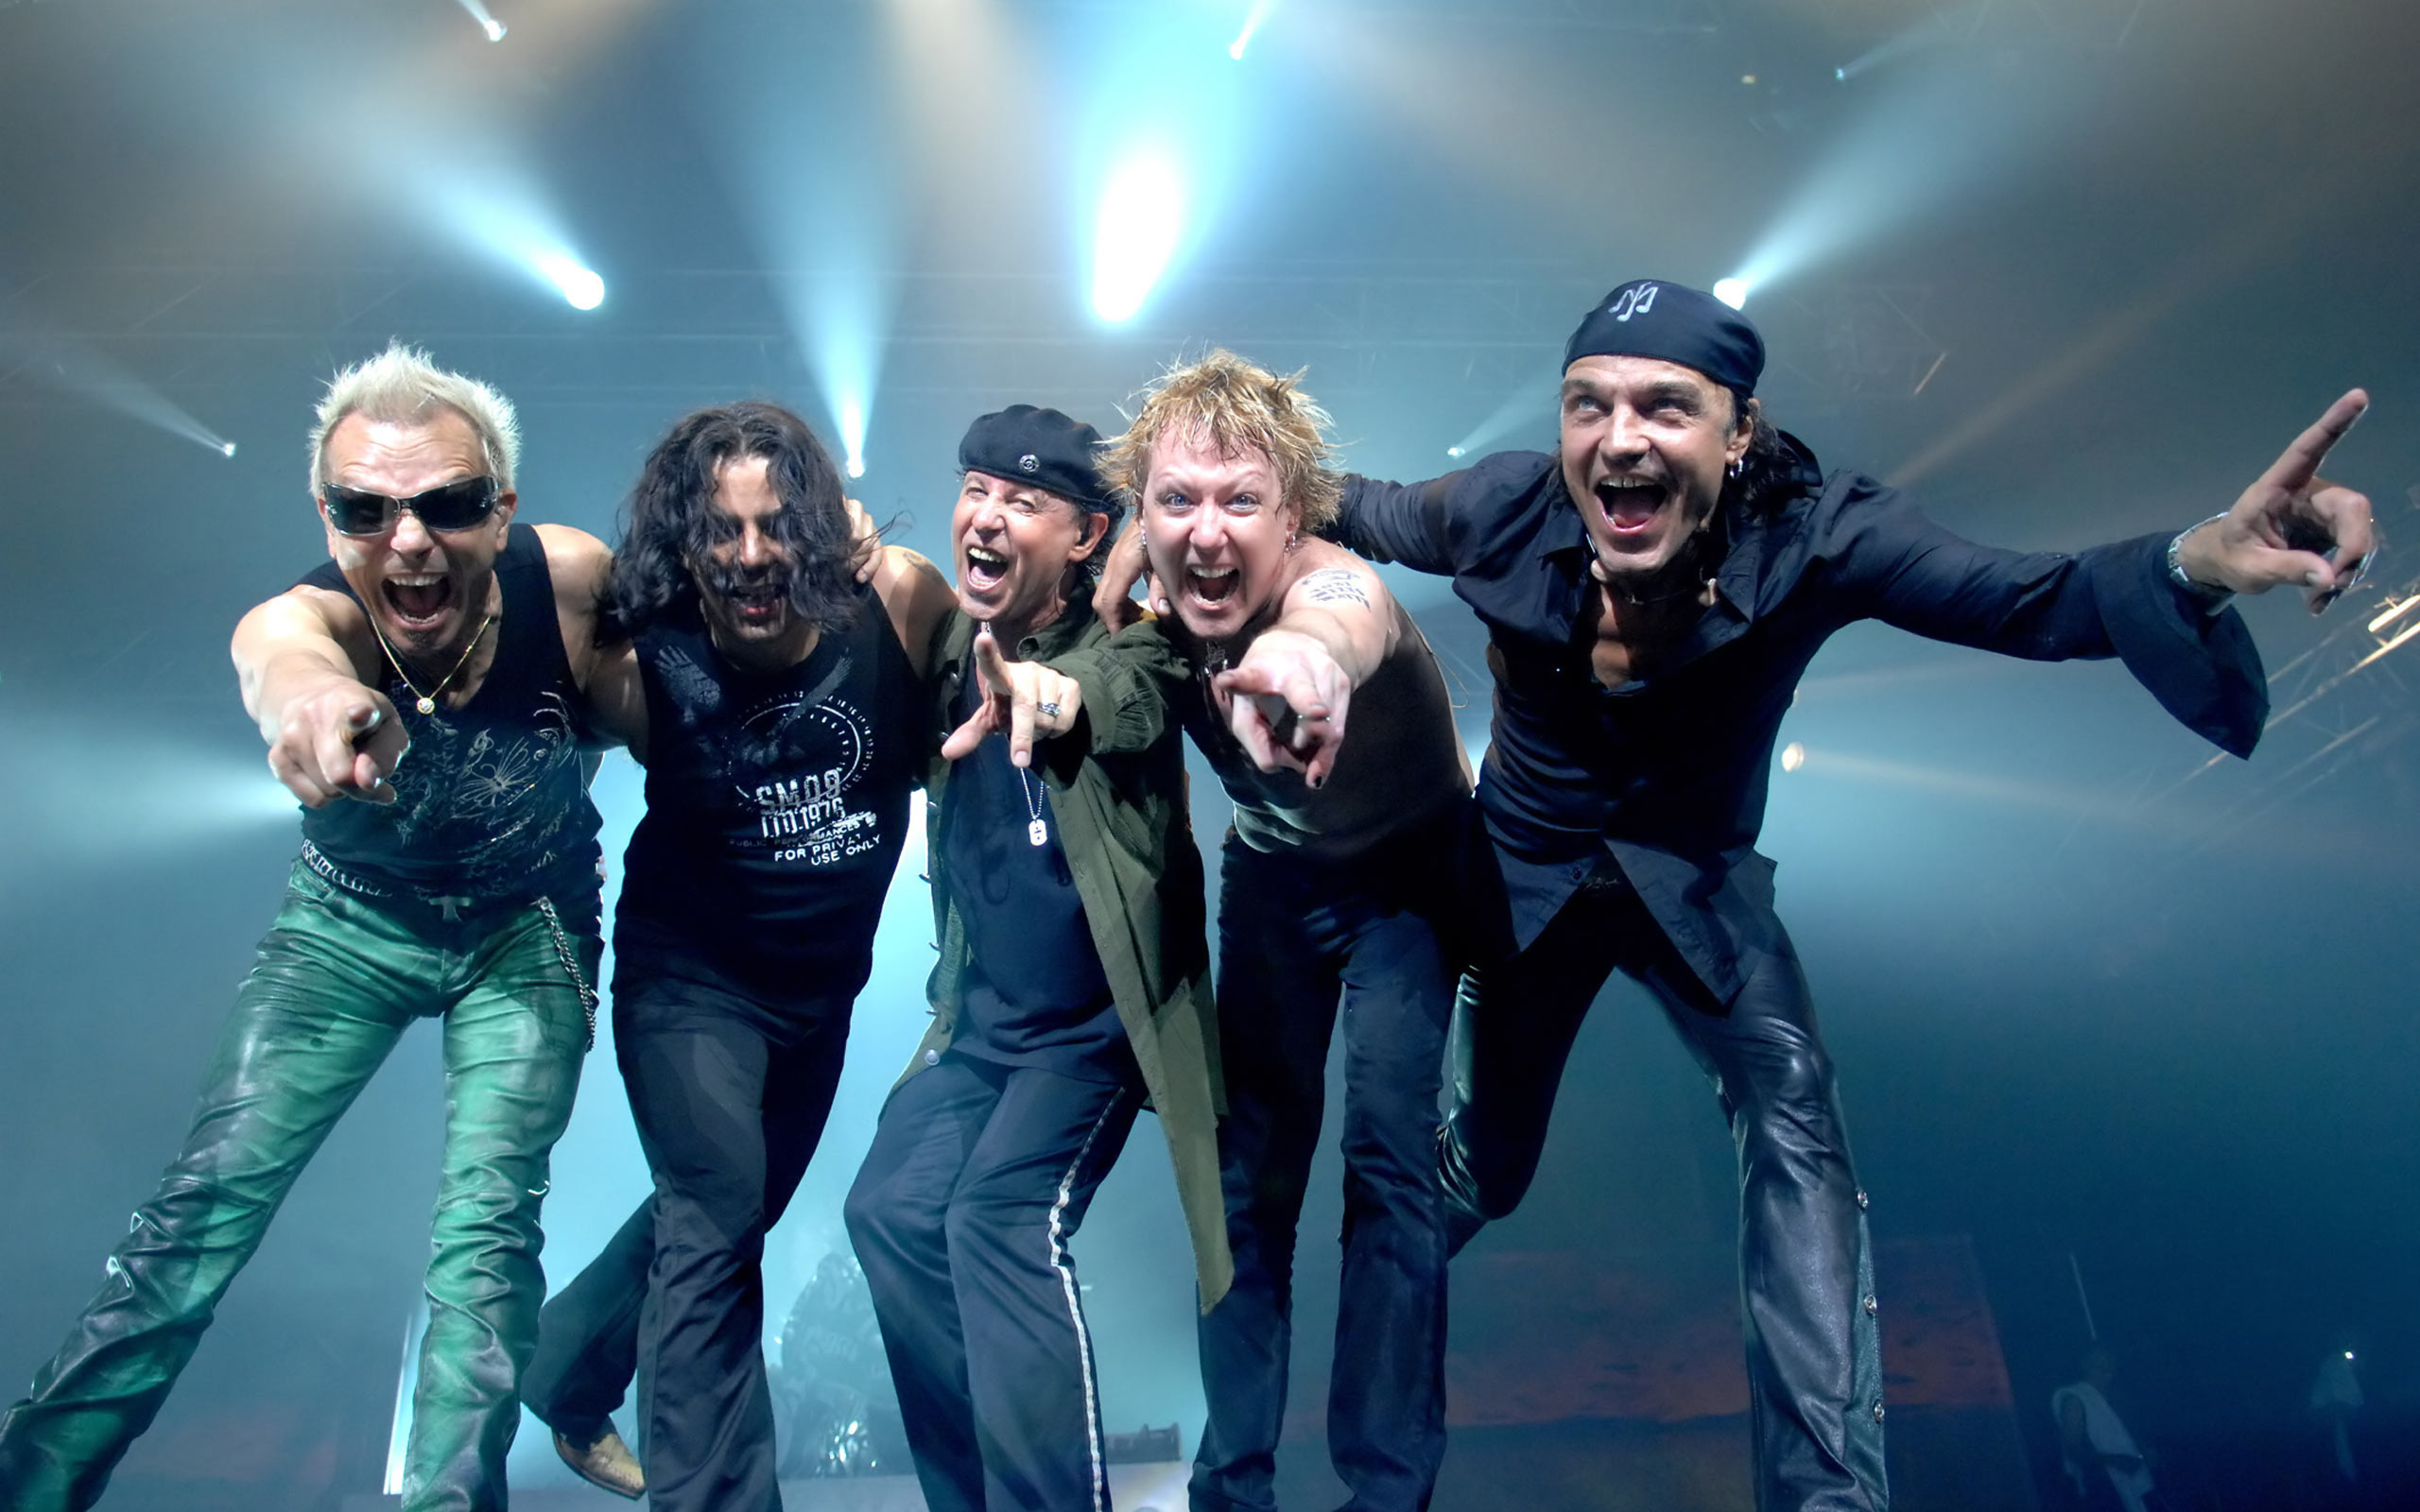 Hannover Scorpions News Scorpions Band Heavy Metal Hard Rock Band From